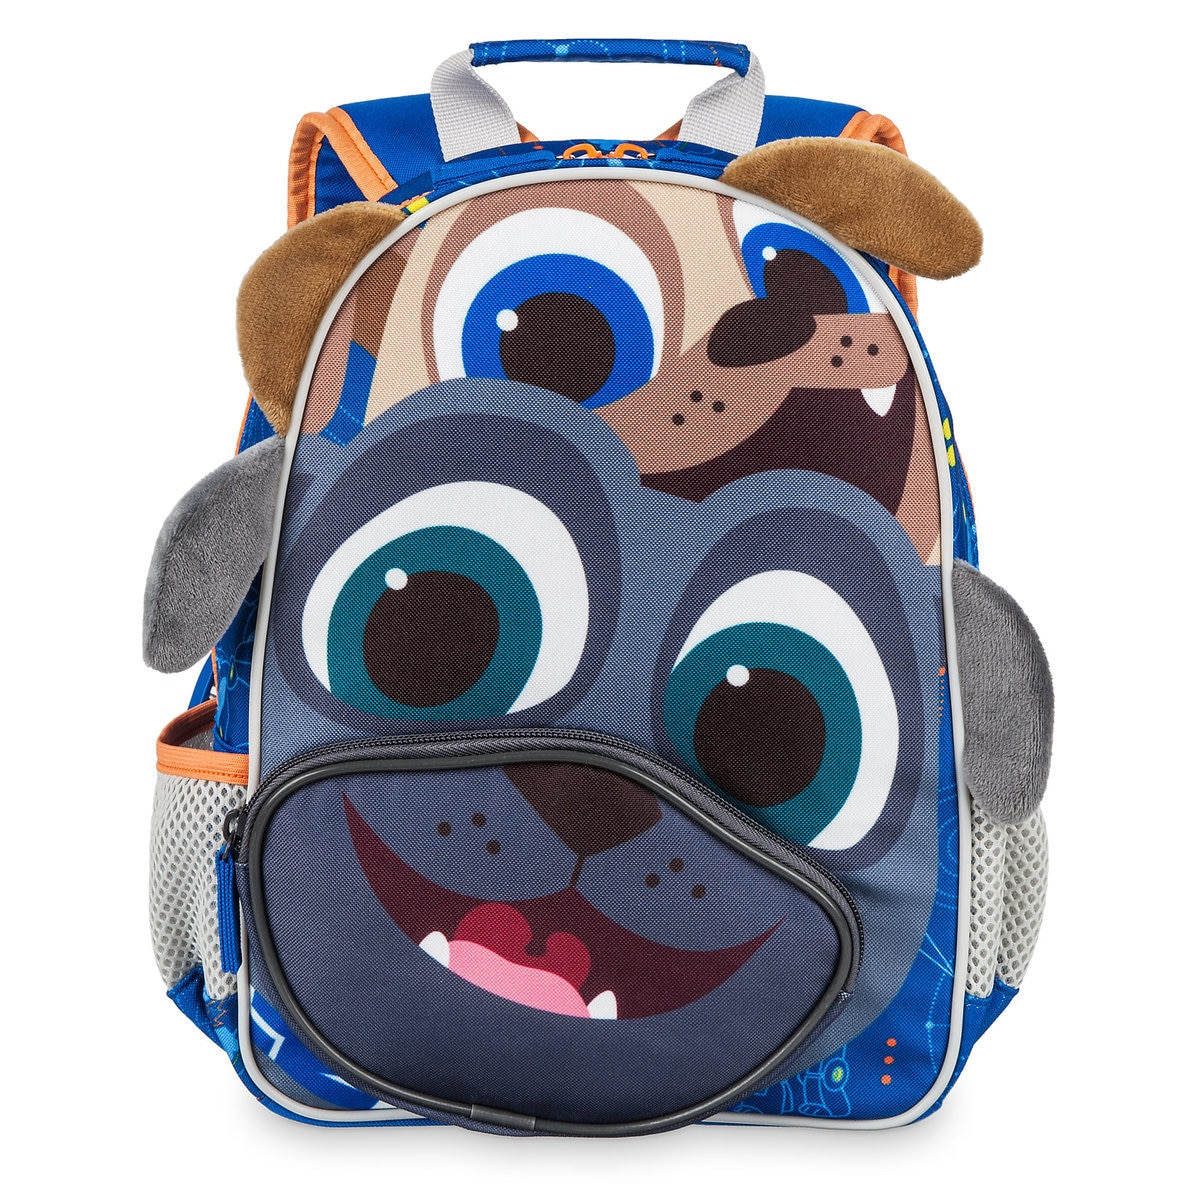 caa360a253 Product Image of Puppy Dog Pals Backpack   1